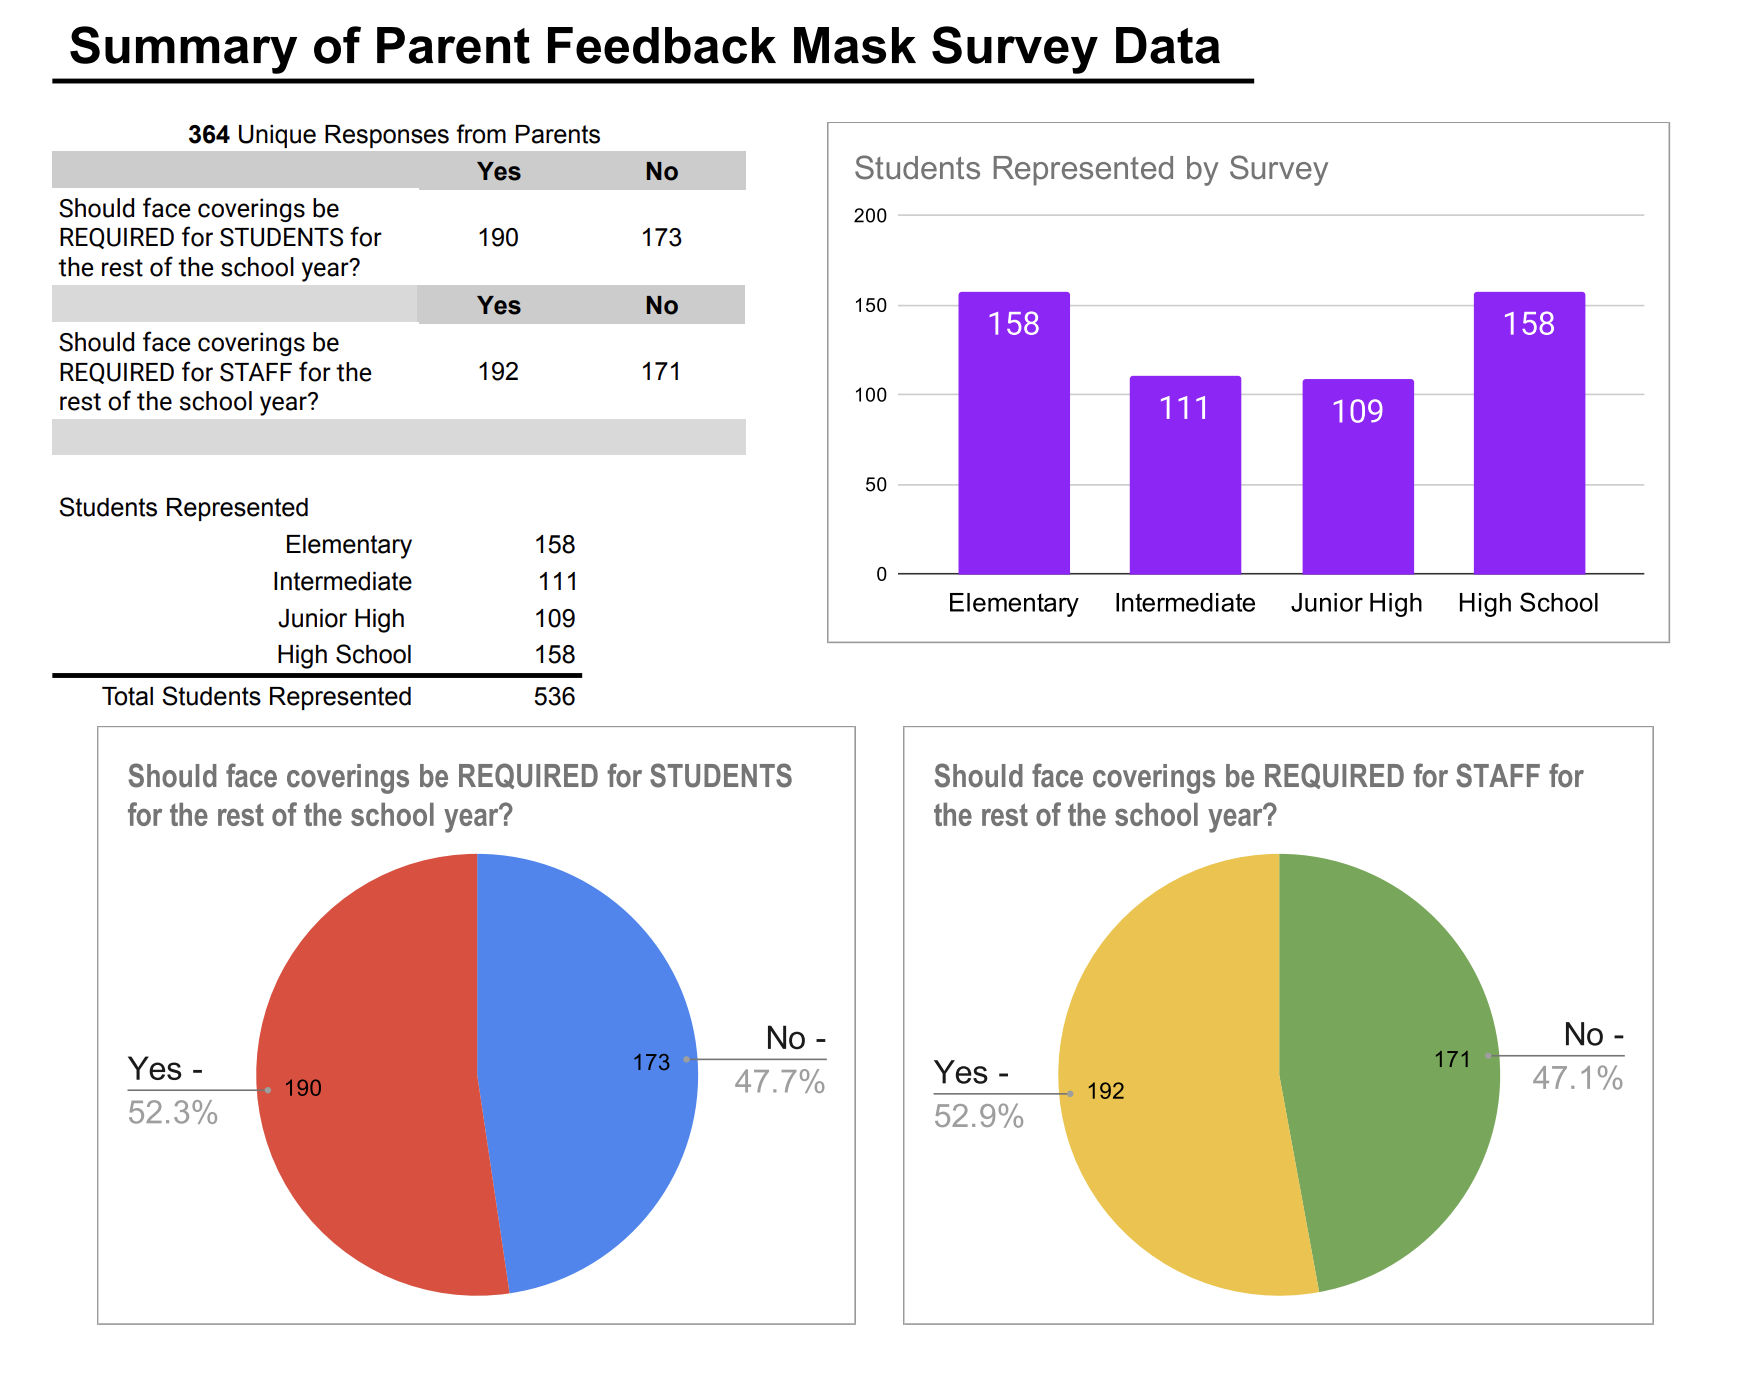 Summary of Parent Mask Feedback